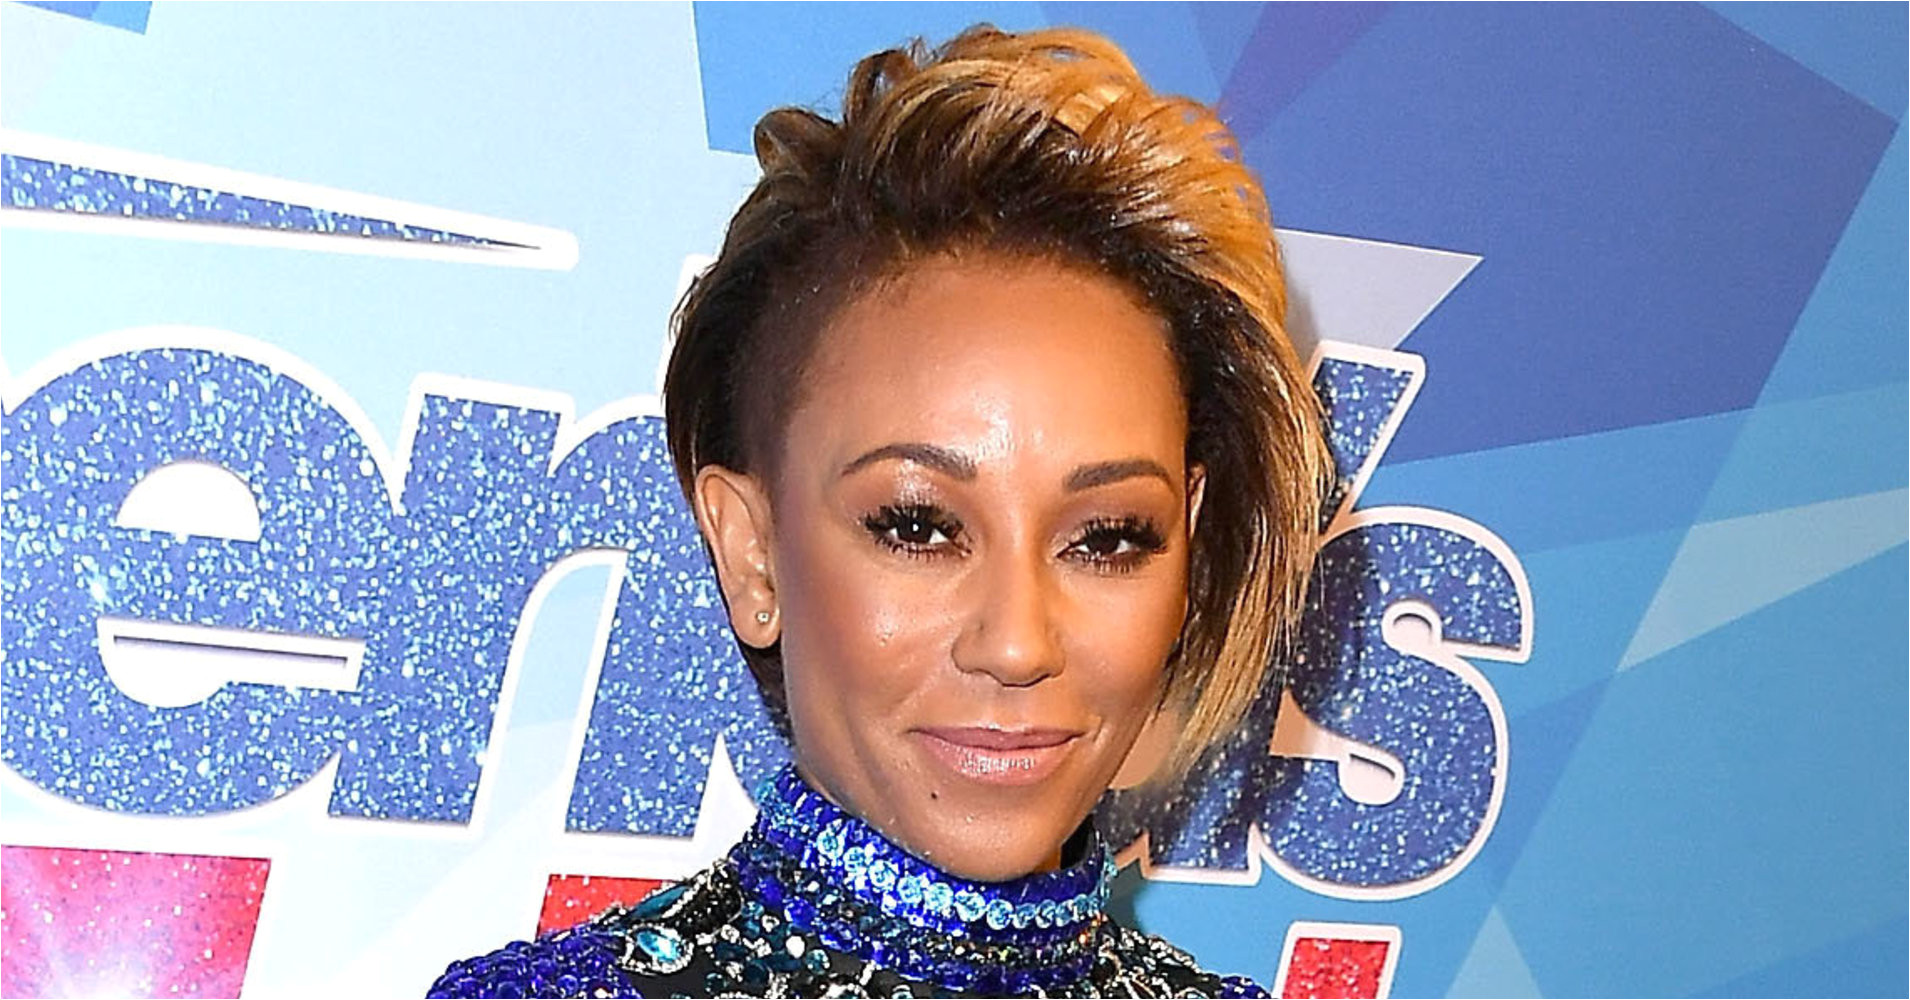 Mel B s Bodysuit From America s Got Talent Leaves Little To The Imagination